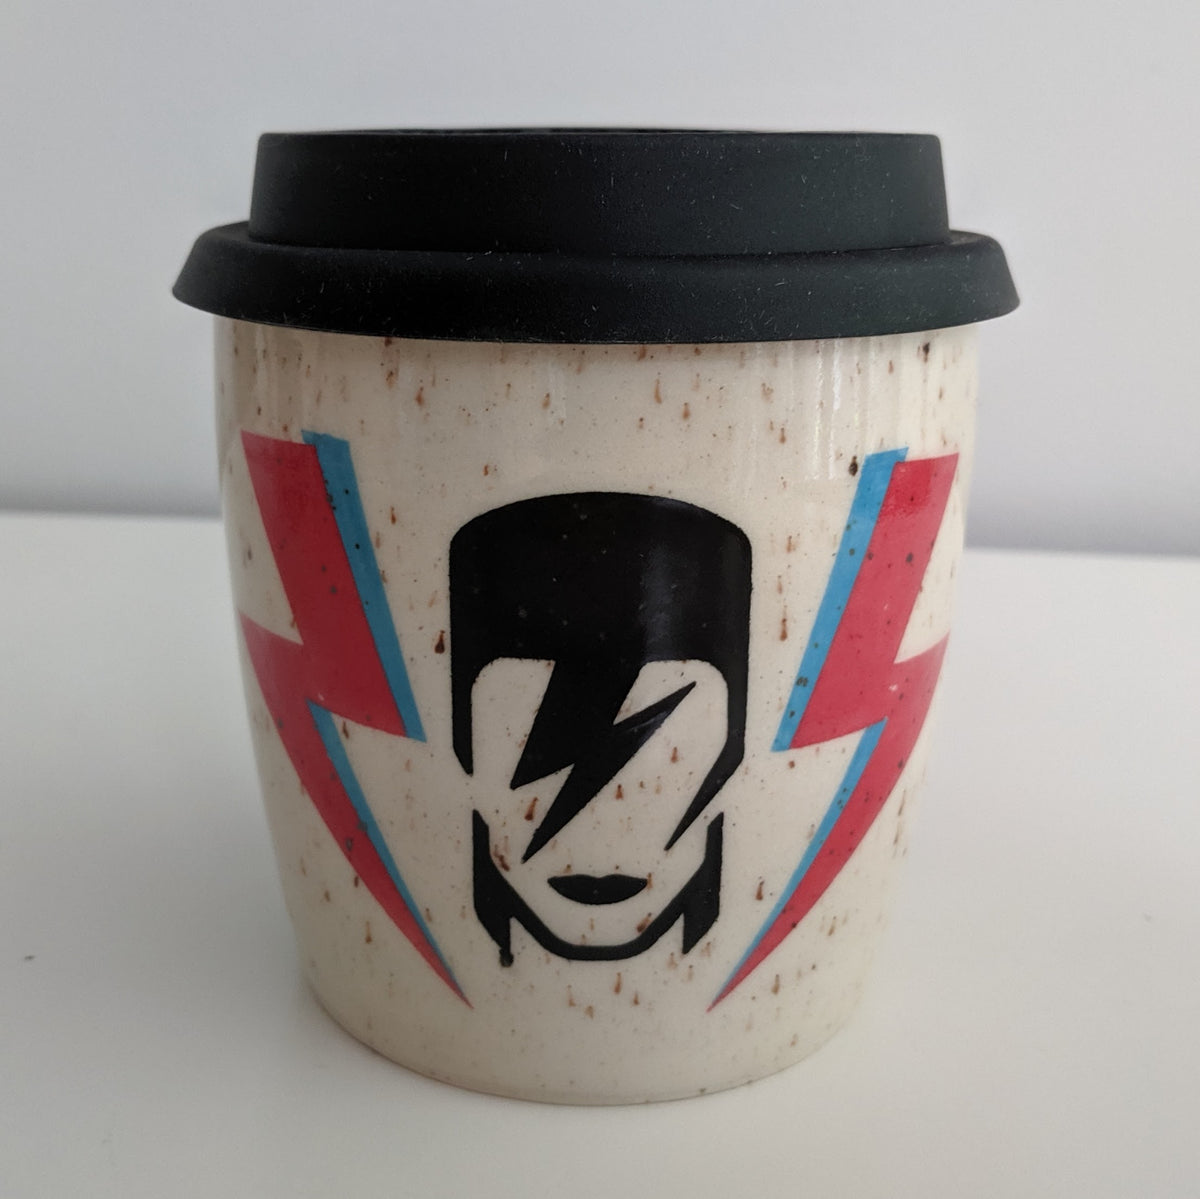 Bowie travel mug with black Ziggy Stardust icon and lightning bolts on both sides